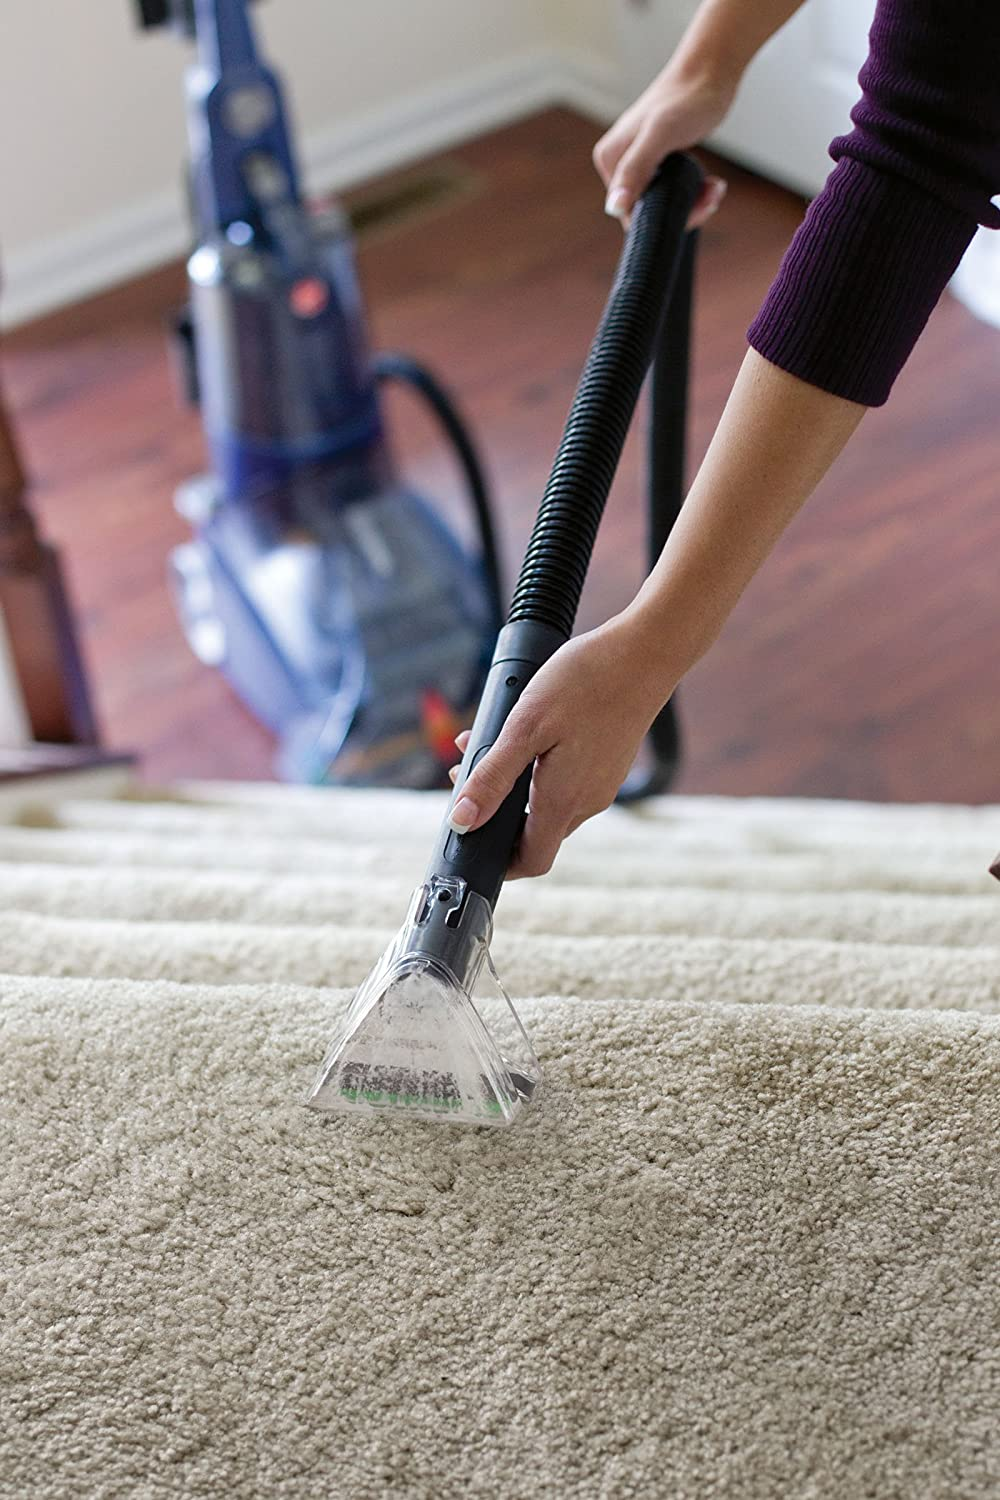 Amazoncom Hoover Max Extract 60 Pressure Pro Carpet Deep Cleaner